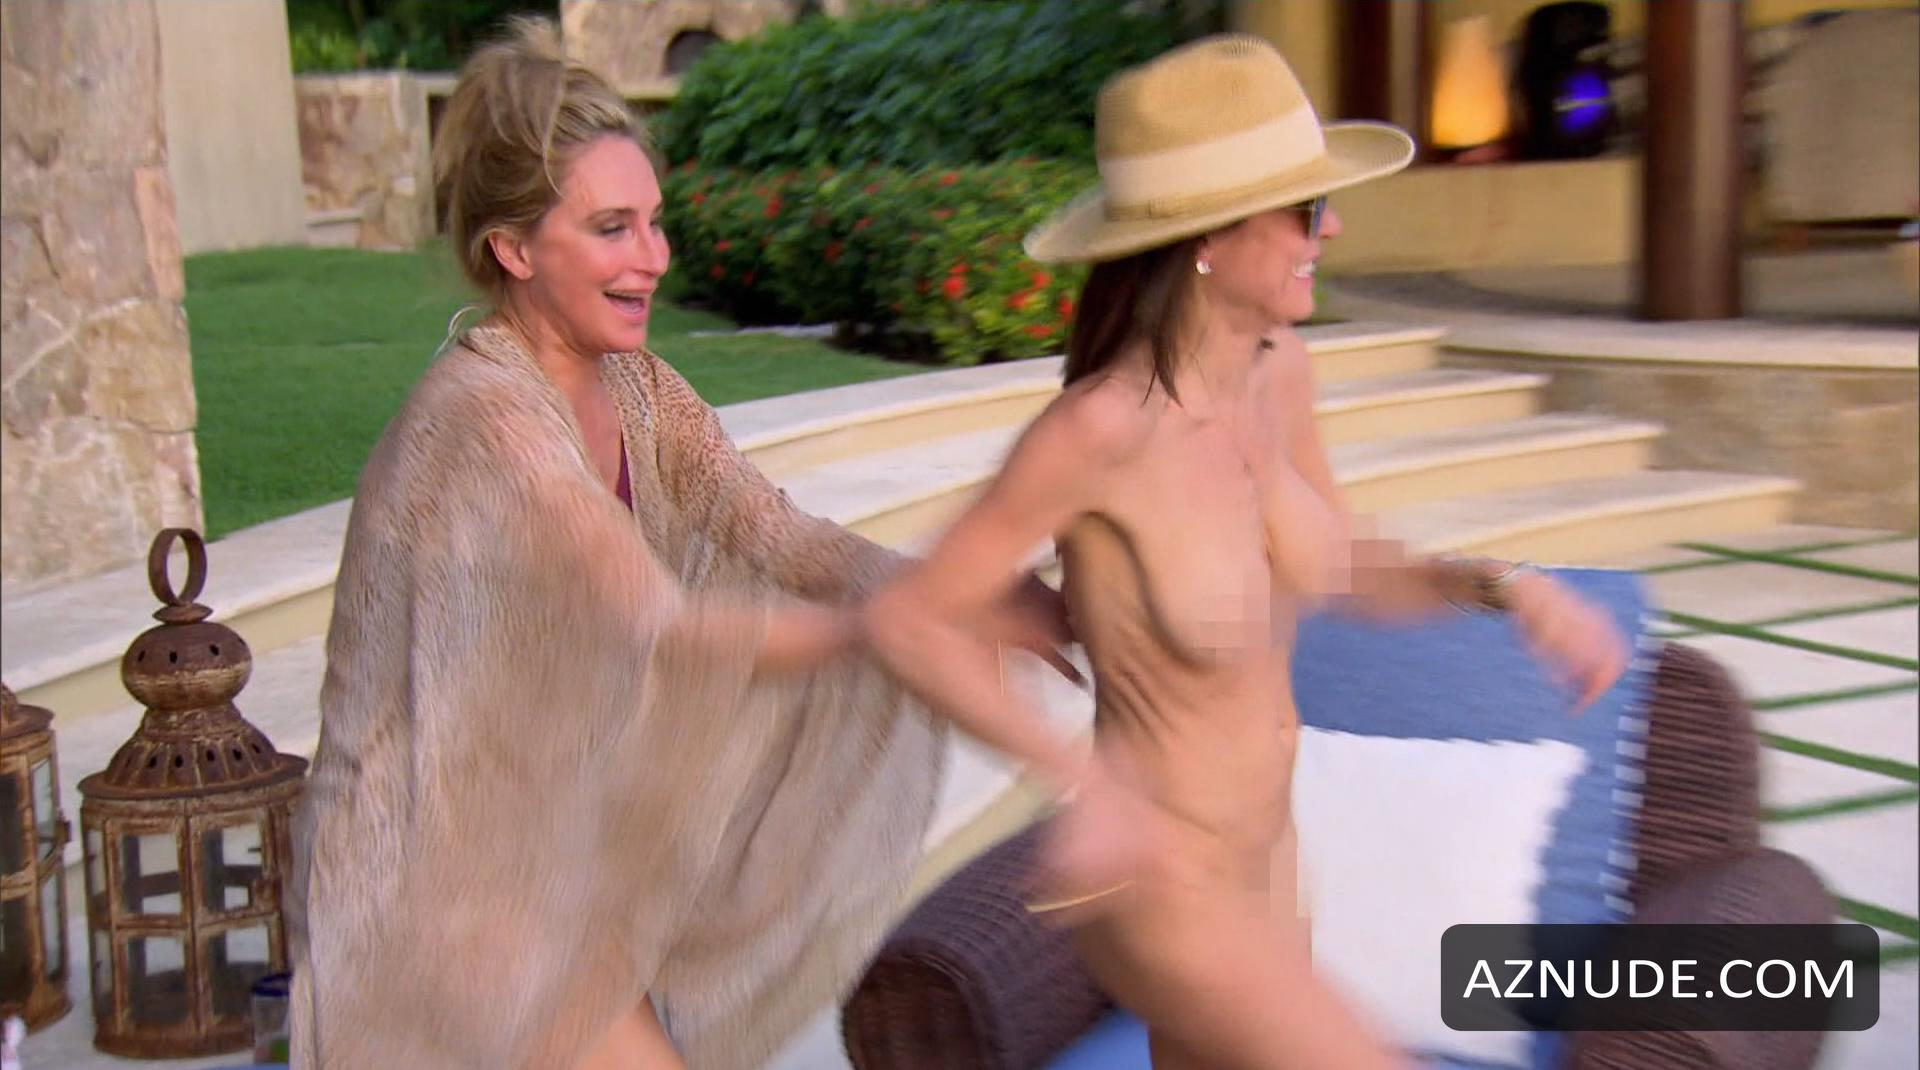 The real housewives of the oc fakes nude — photo 14